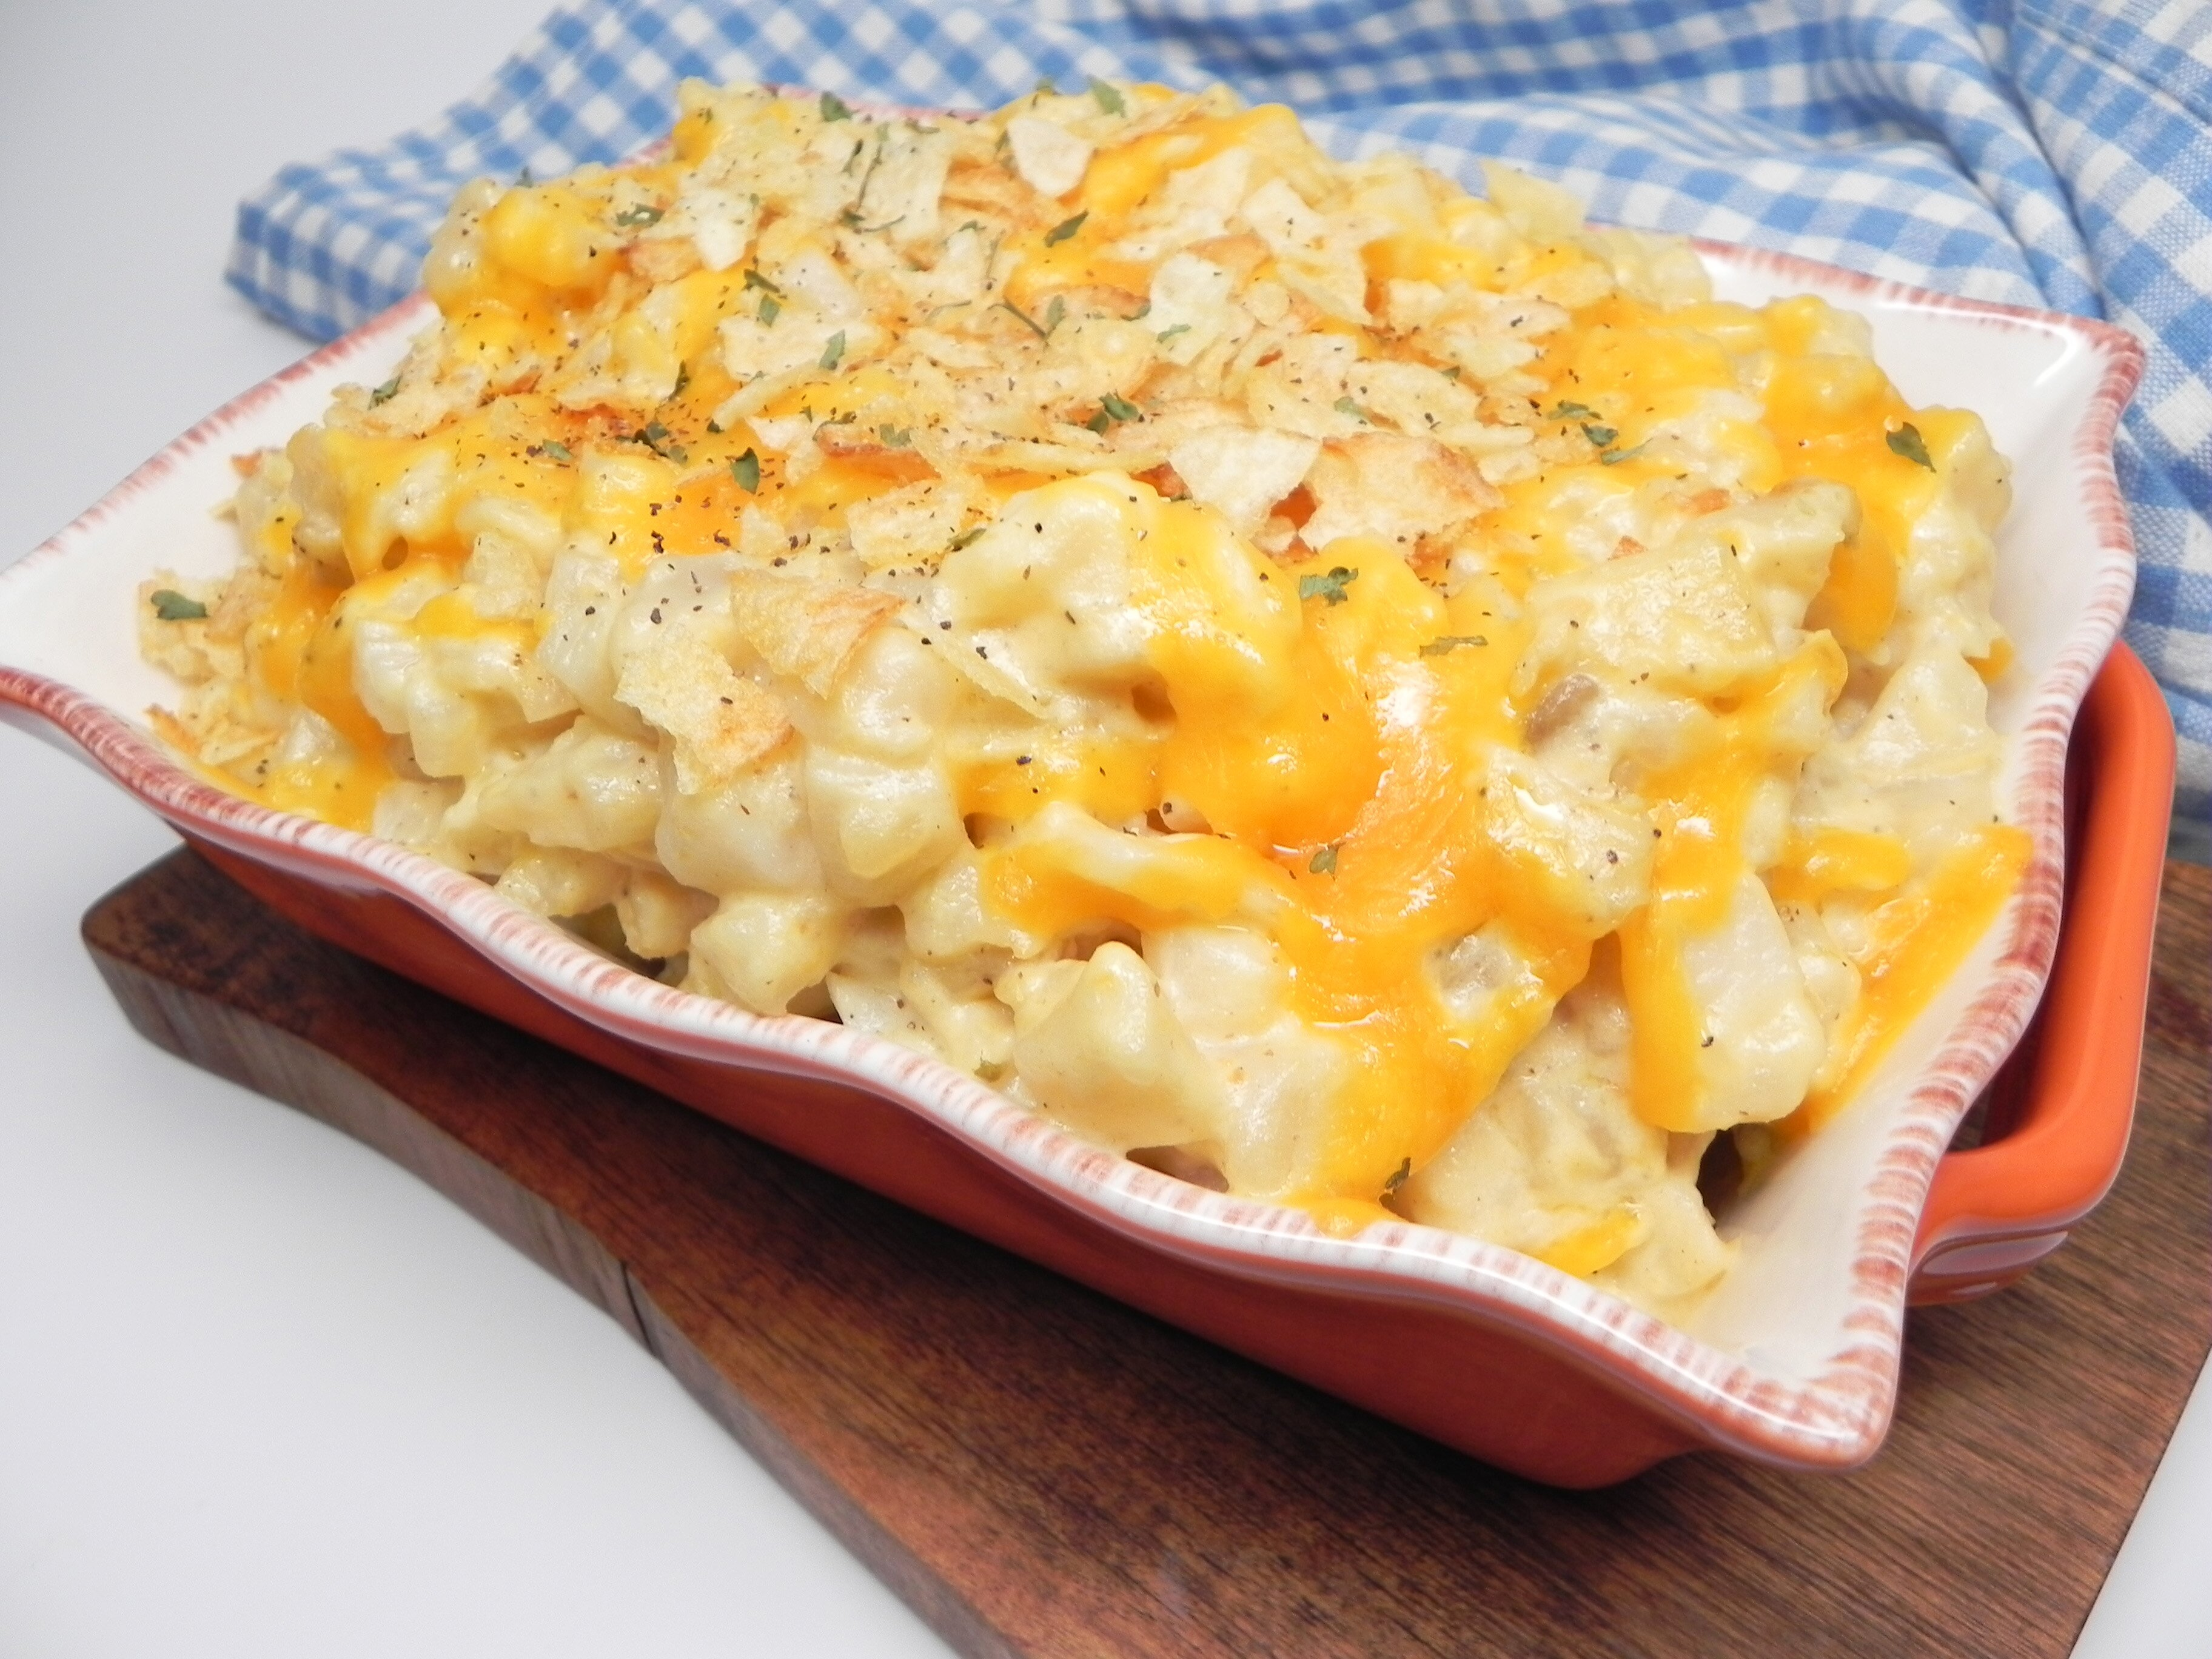 slow cooker funeral potatoes hash brown casserole